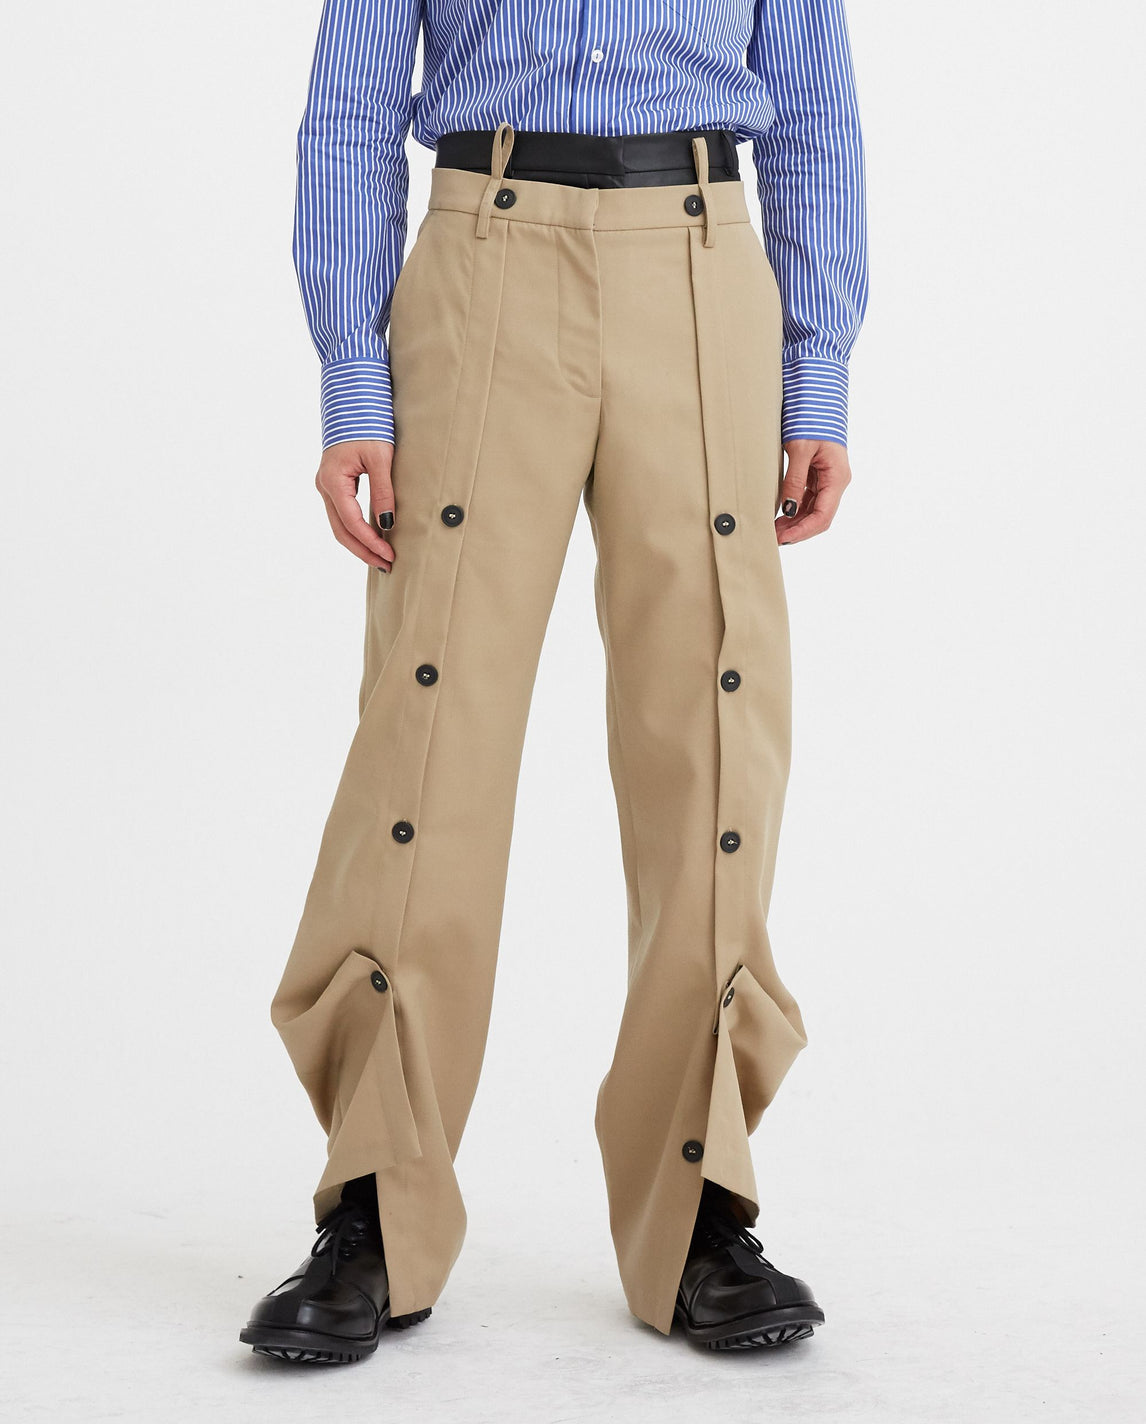 Wide Leg Trousers with Buttons - Beige UNISEX DELADA